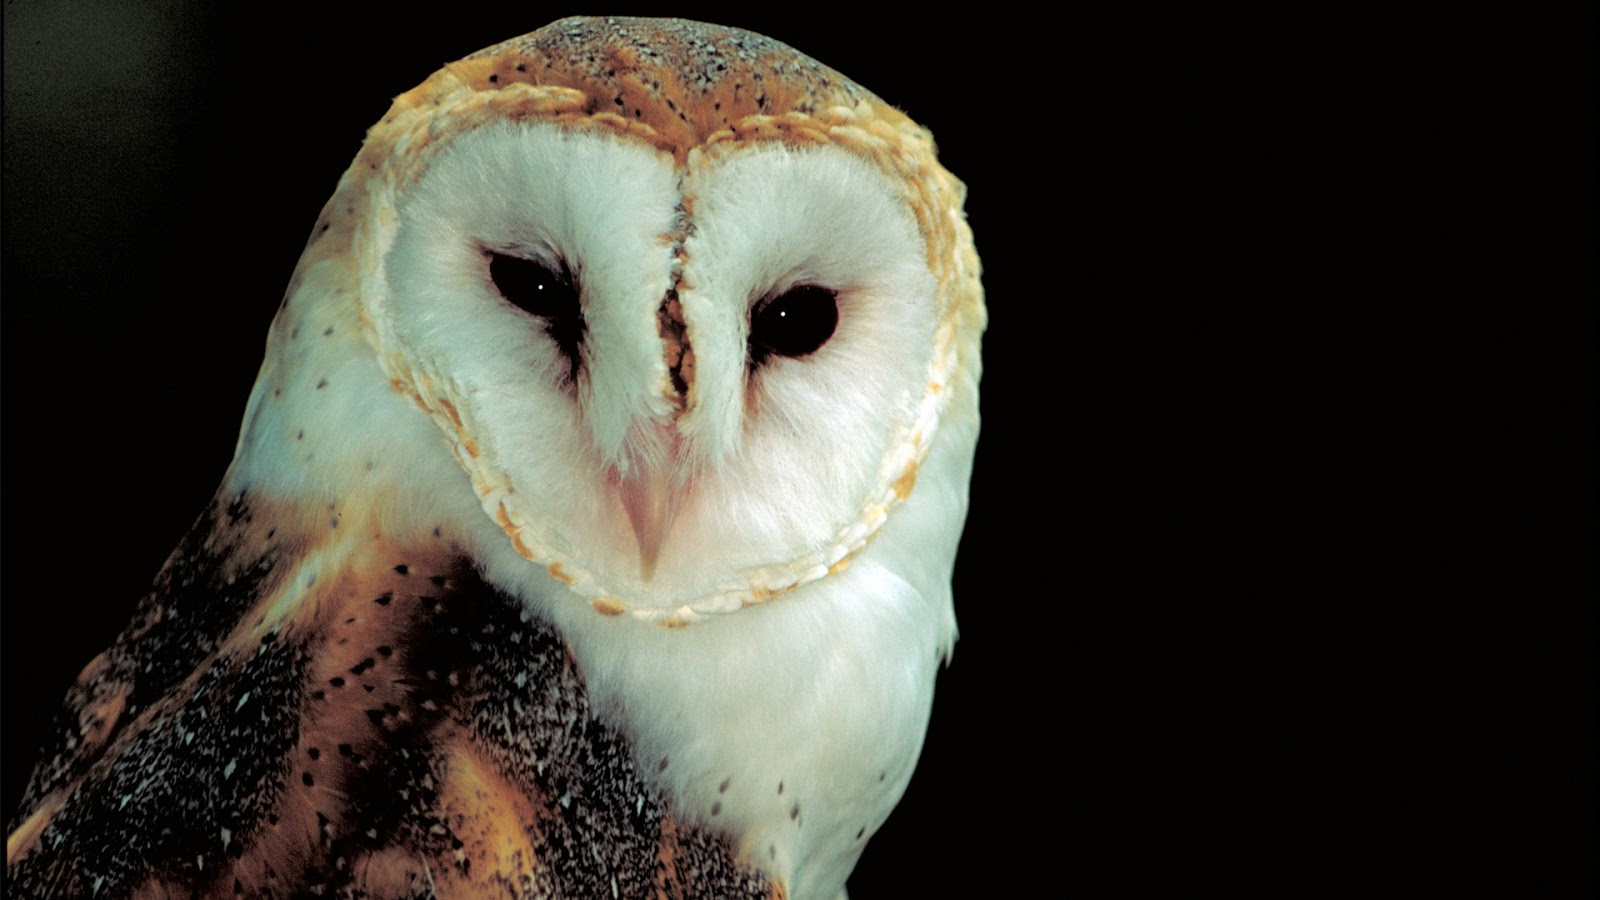 barn owl Find great deals on ebay for barn owl shop with confidence.